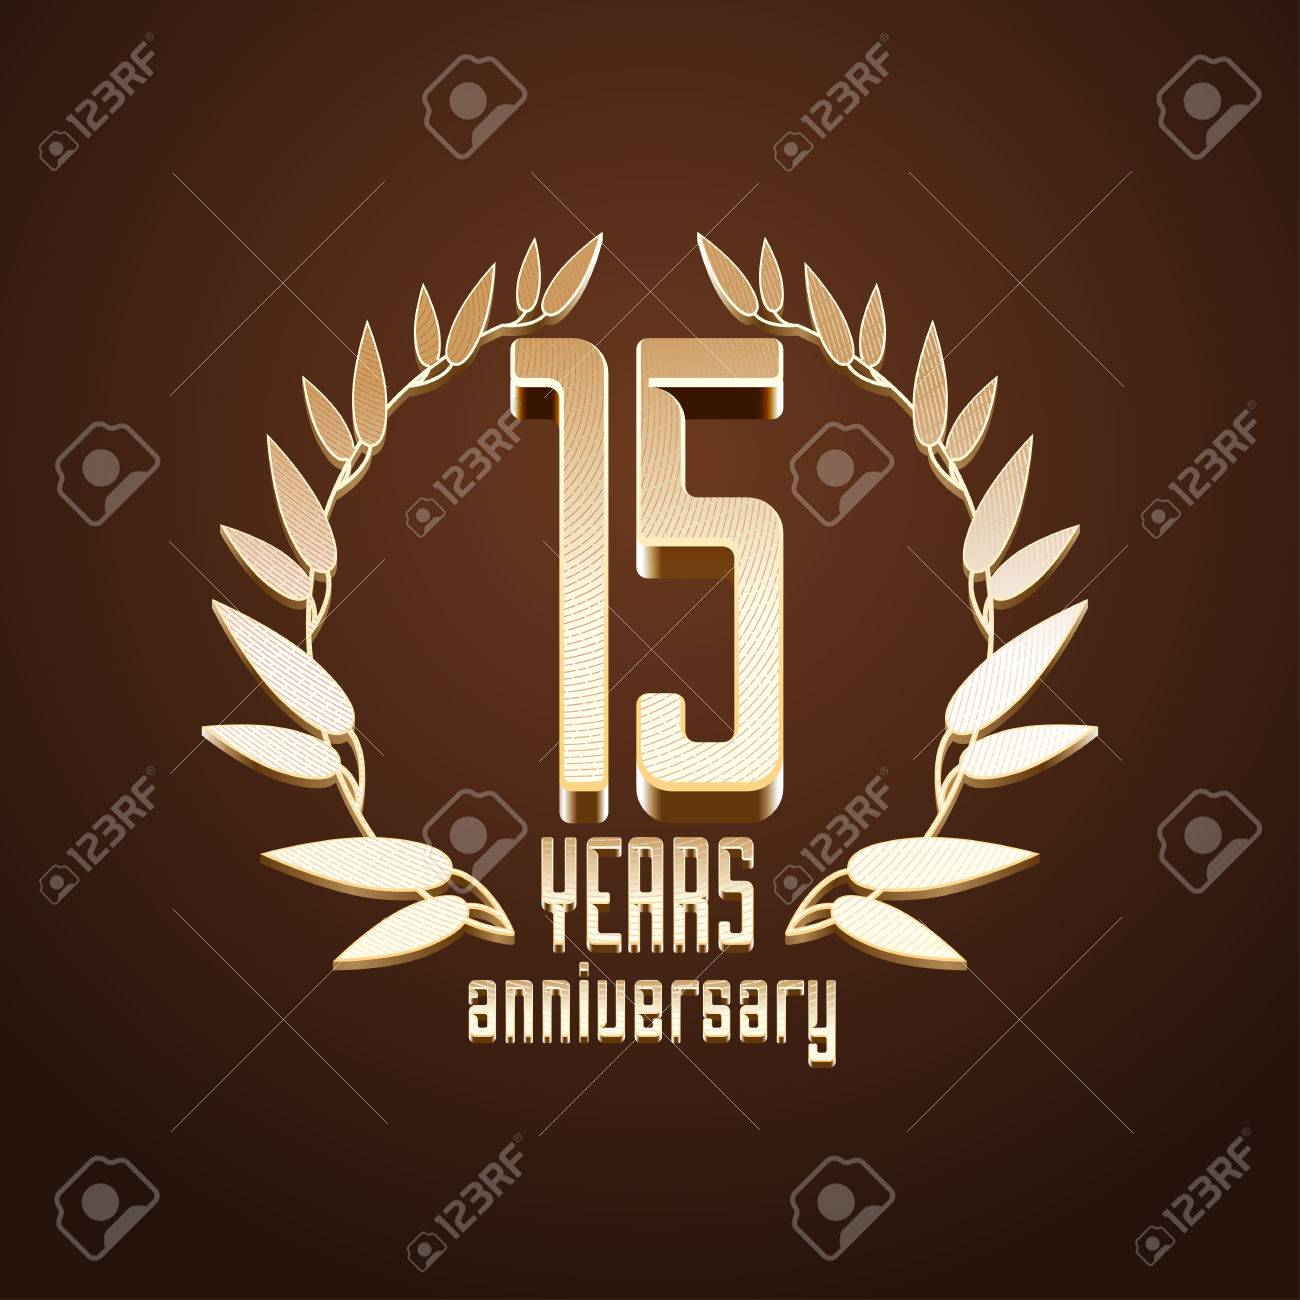 15 Years Anniversary Vector 15th Birthday Age Classic Decoration